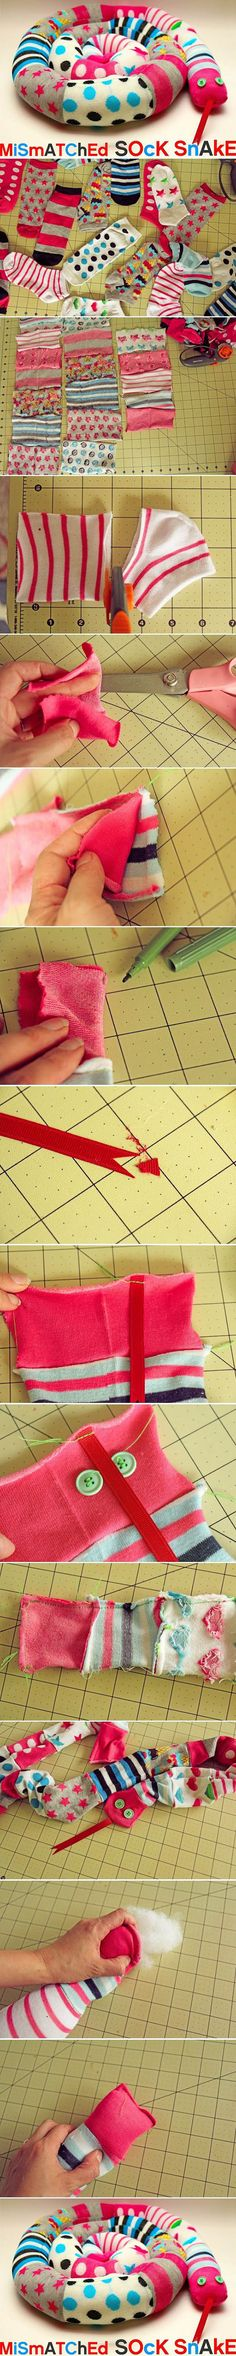 Diy Cute Snake   DIY & Crafts Tutorials REVIEW: This is SUPER cute when completed. We had so many mismatched socks that ours is almost 6 feet long.  One tip is that you should definitely use a sewing machine for the long seam.  Also, leave 2 or 3 gaps in the long seam for stuffing after turning right side out - it is nearly impossible to stuff the whole length of a six-foot snake from just a hole at the end.  Use a hidden stitch to close those gaps once stuffed.